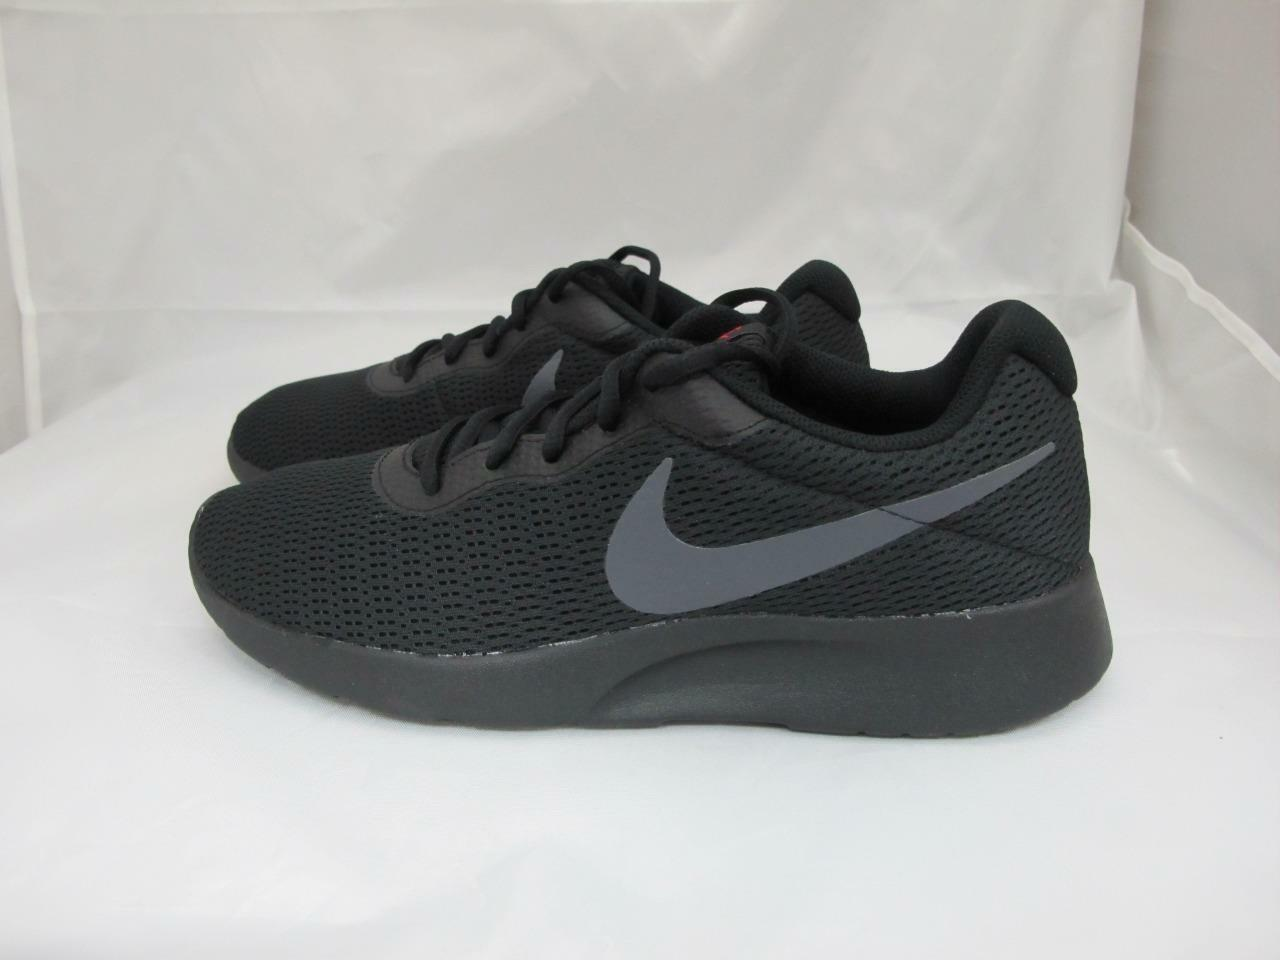 NEW MEN'S NIKE TANJUN 812654-015